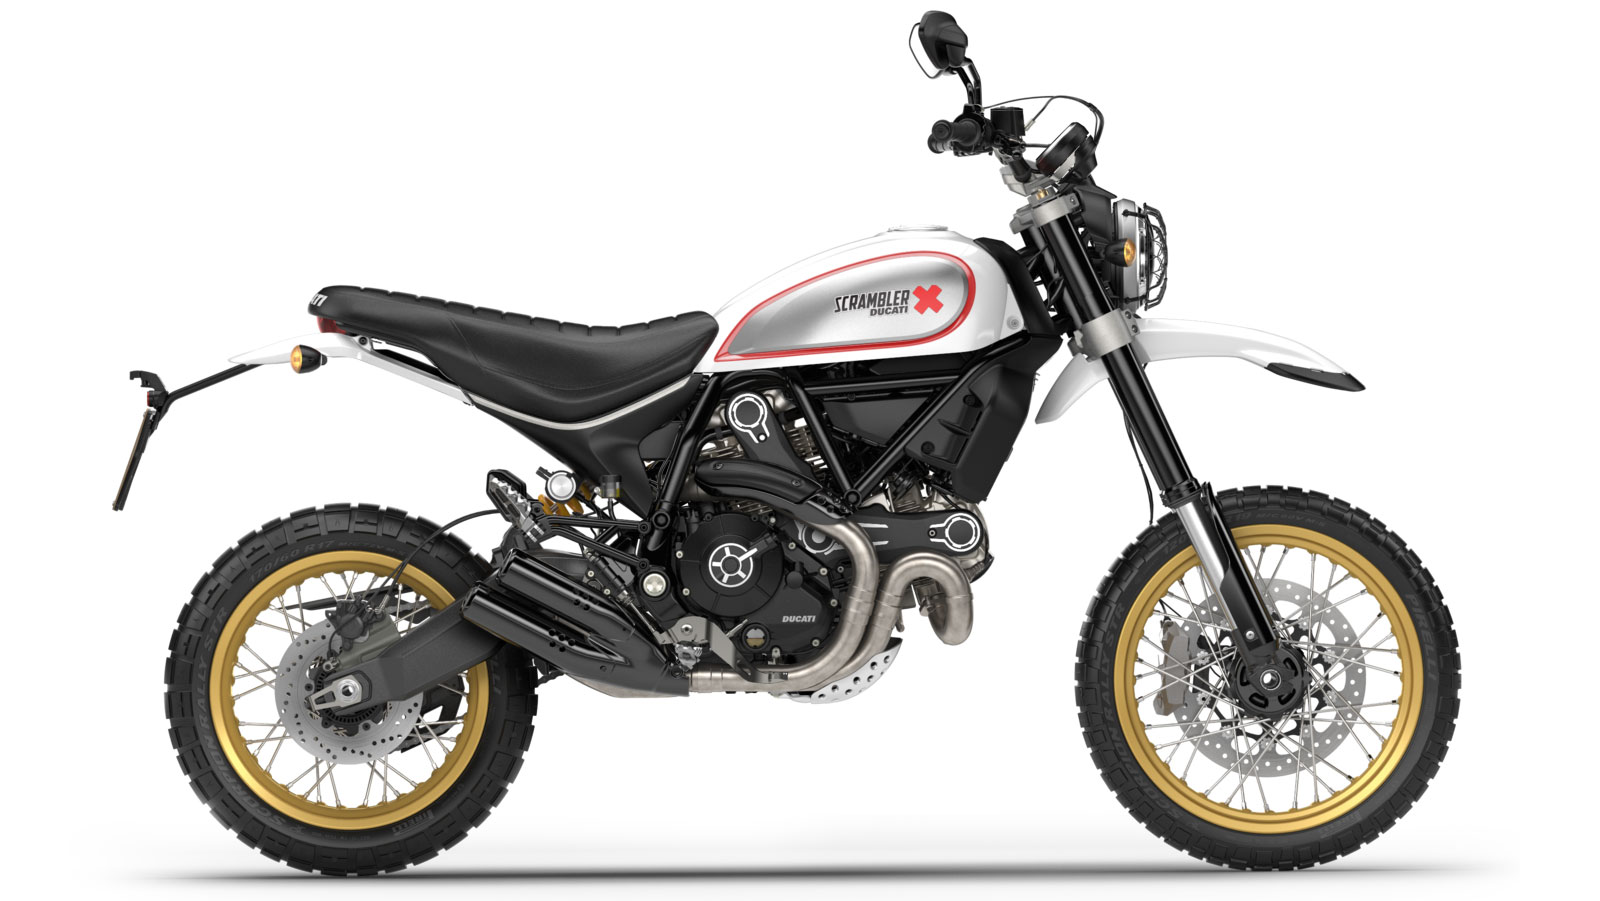 2017 Ducati Desert Sled for sale at Ducati Preston, Lancashire, Scotland